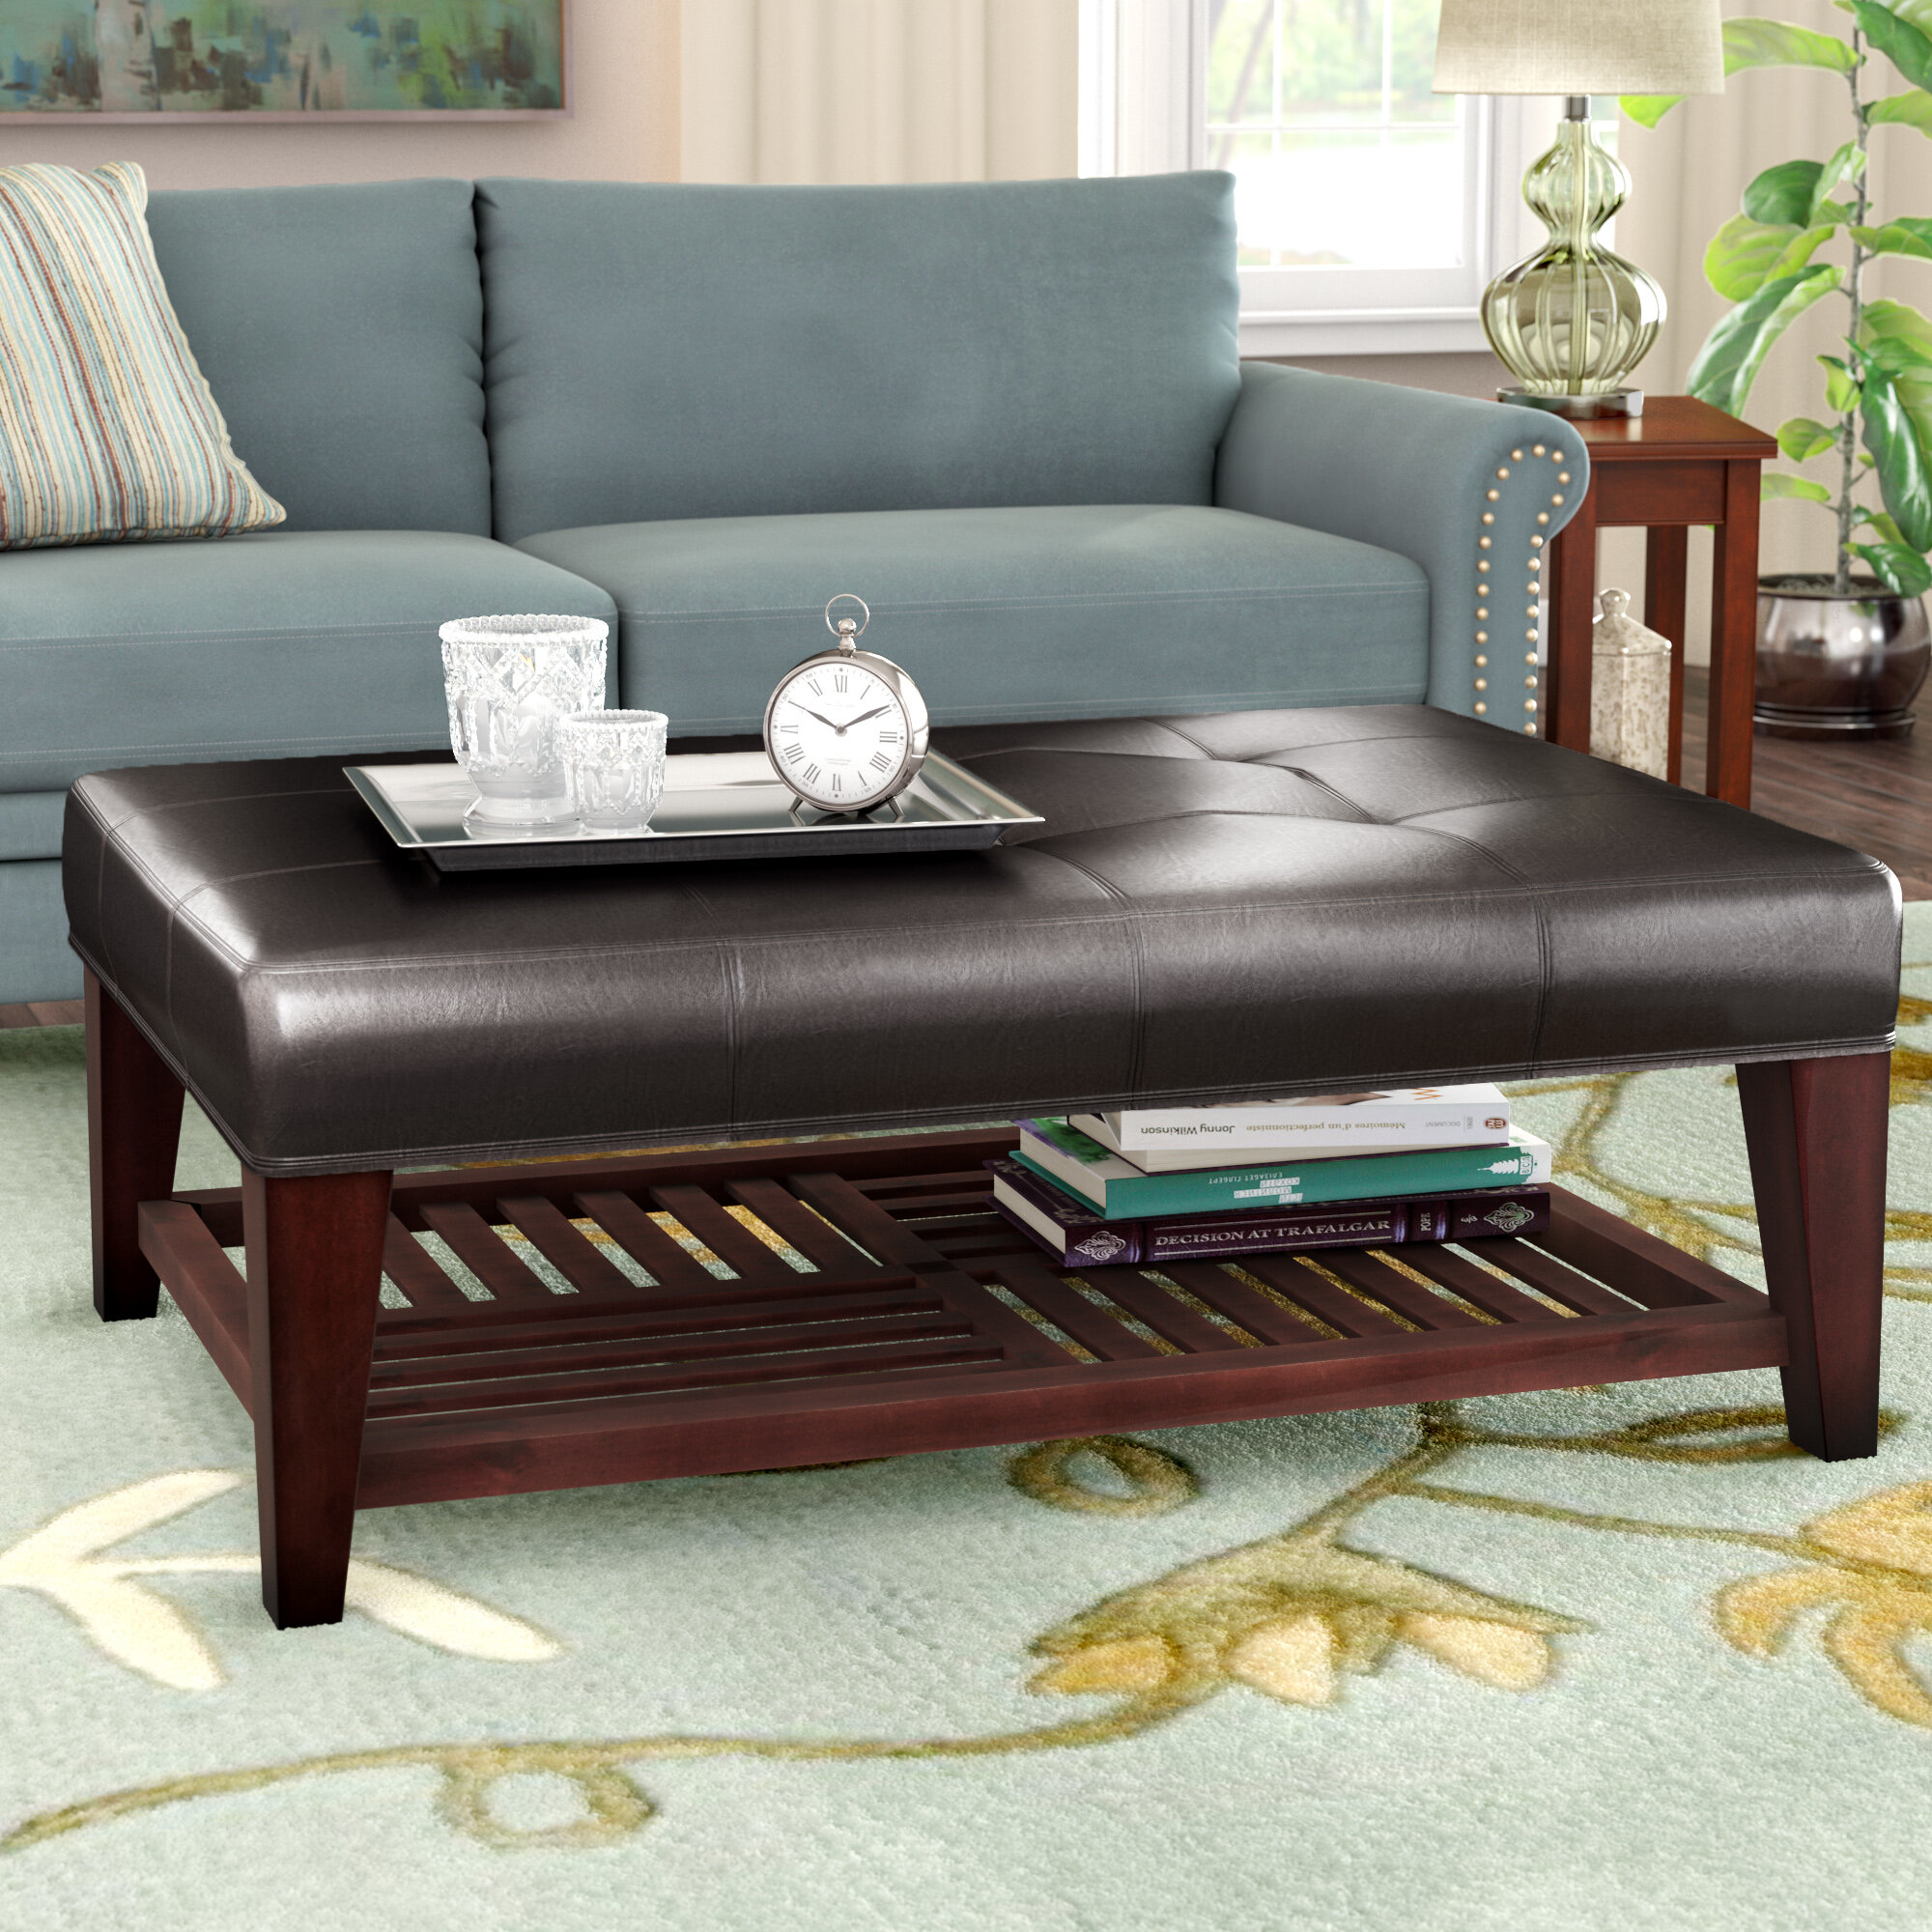 Upholstered Coffee Tables Free Shipping Over 35 Wayfair